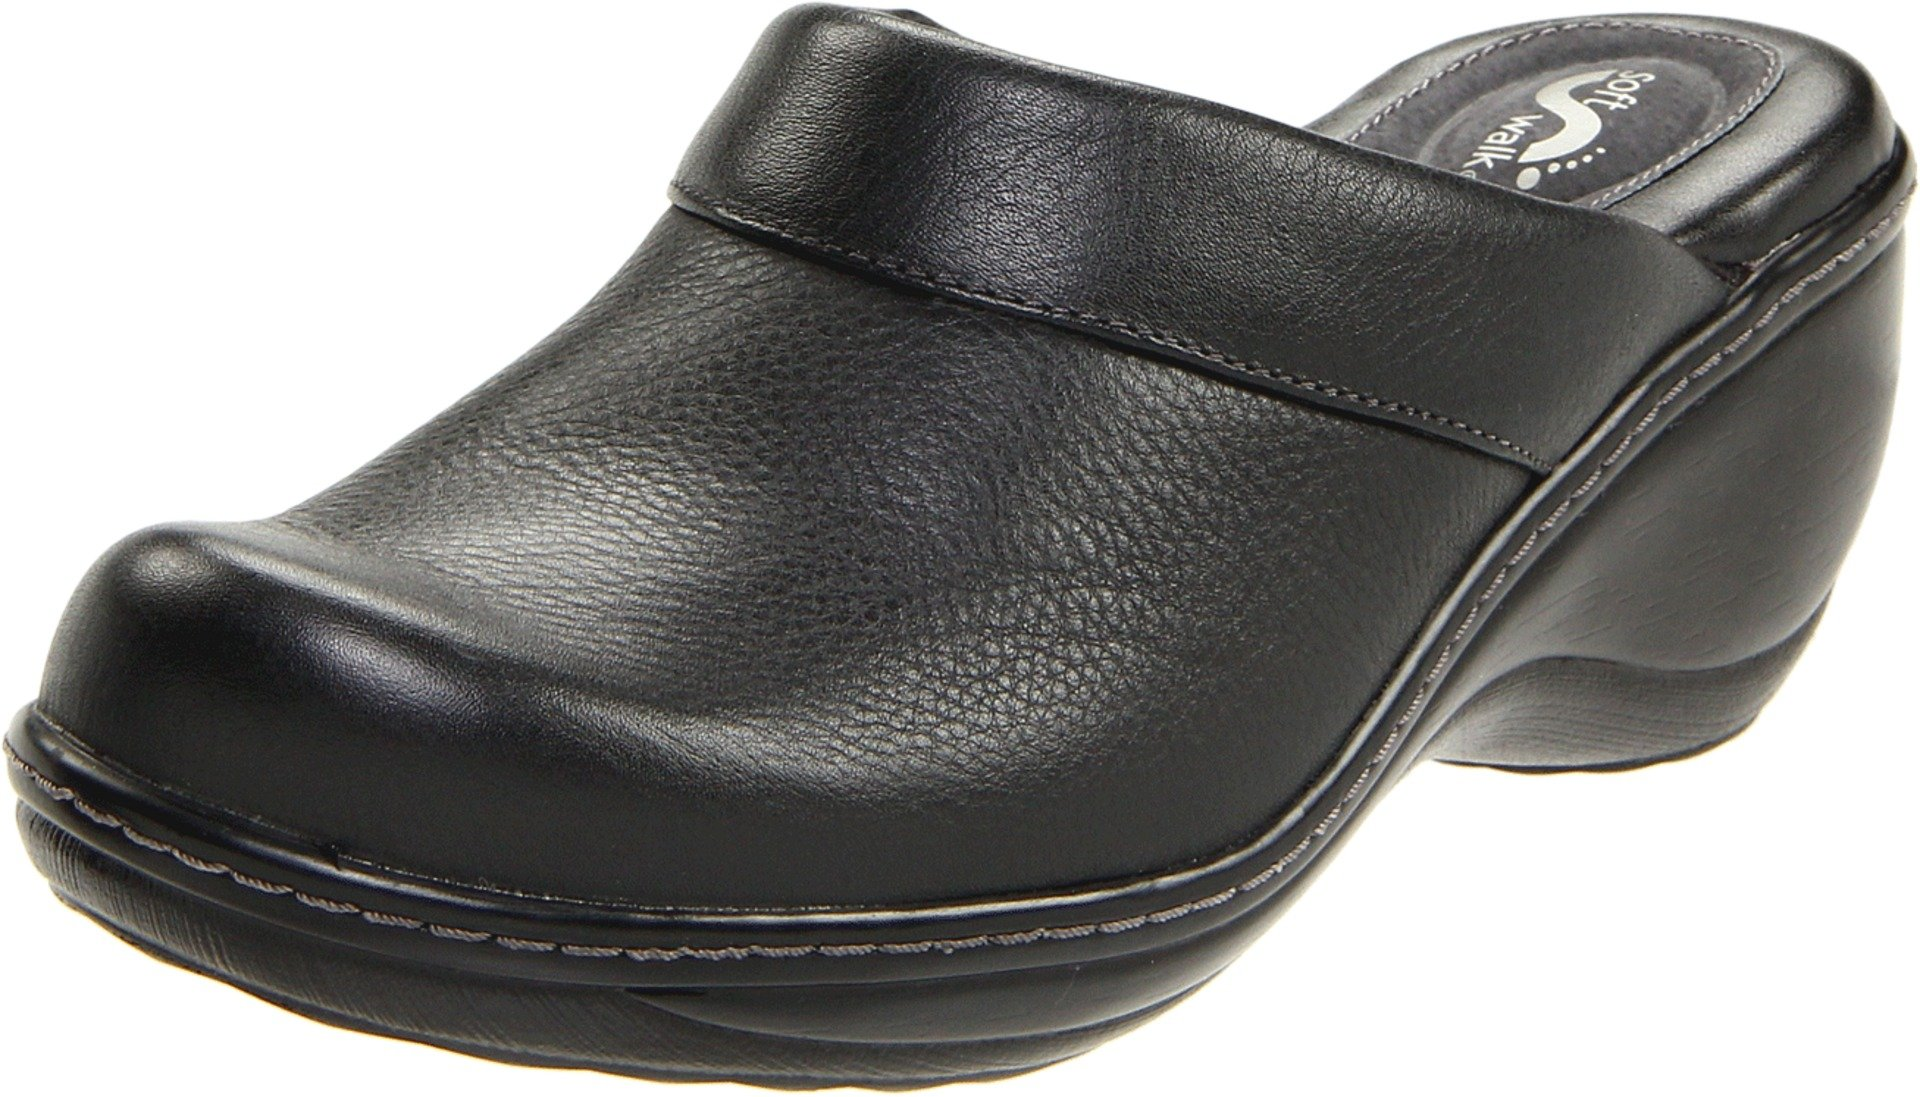 Softwalk Women's Murietta Clog,Black,8.5 N